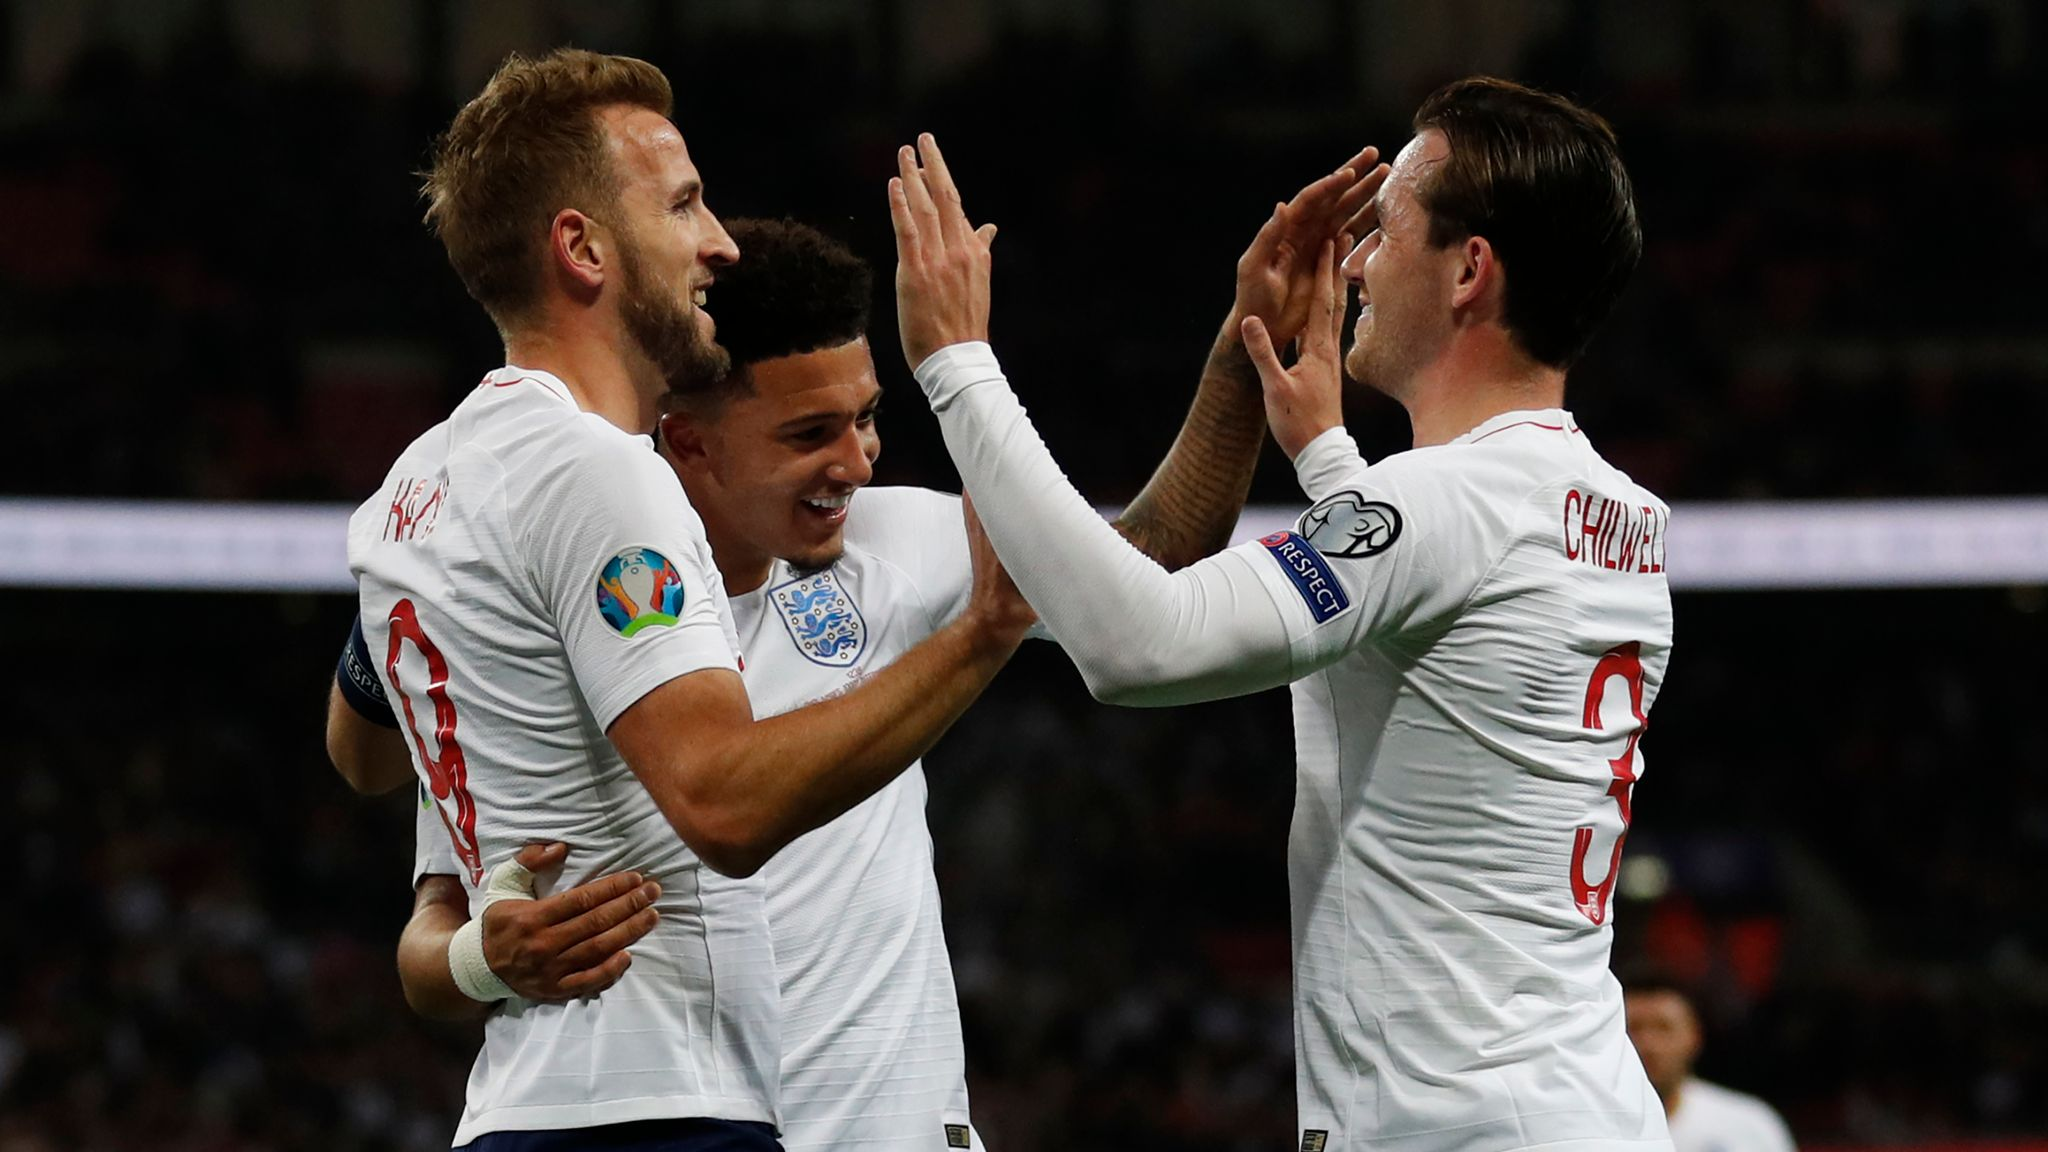 Nations League Draw England To Face Iceland Denmark And Belgium In 2020 21 Competition Football News Sky Sports